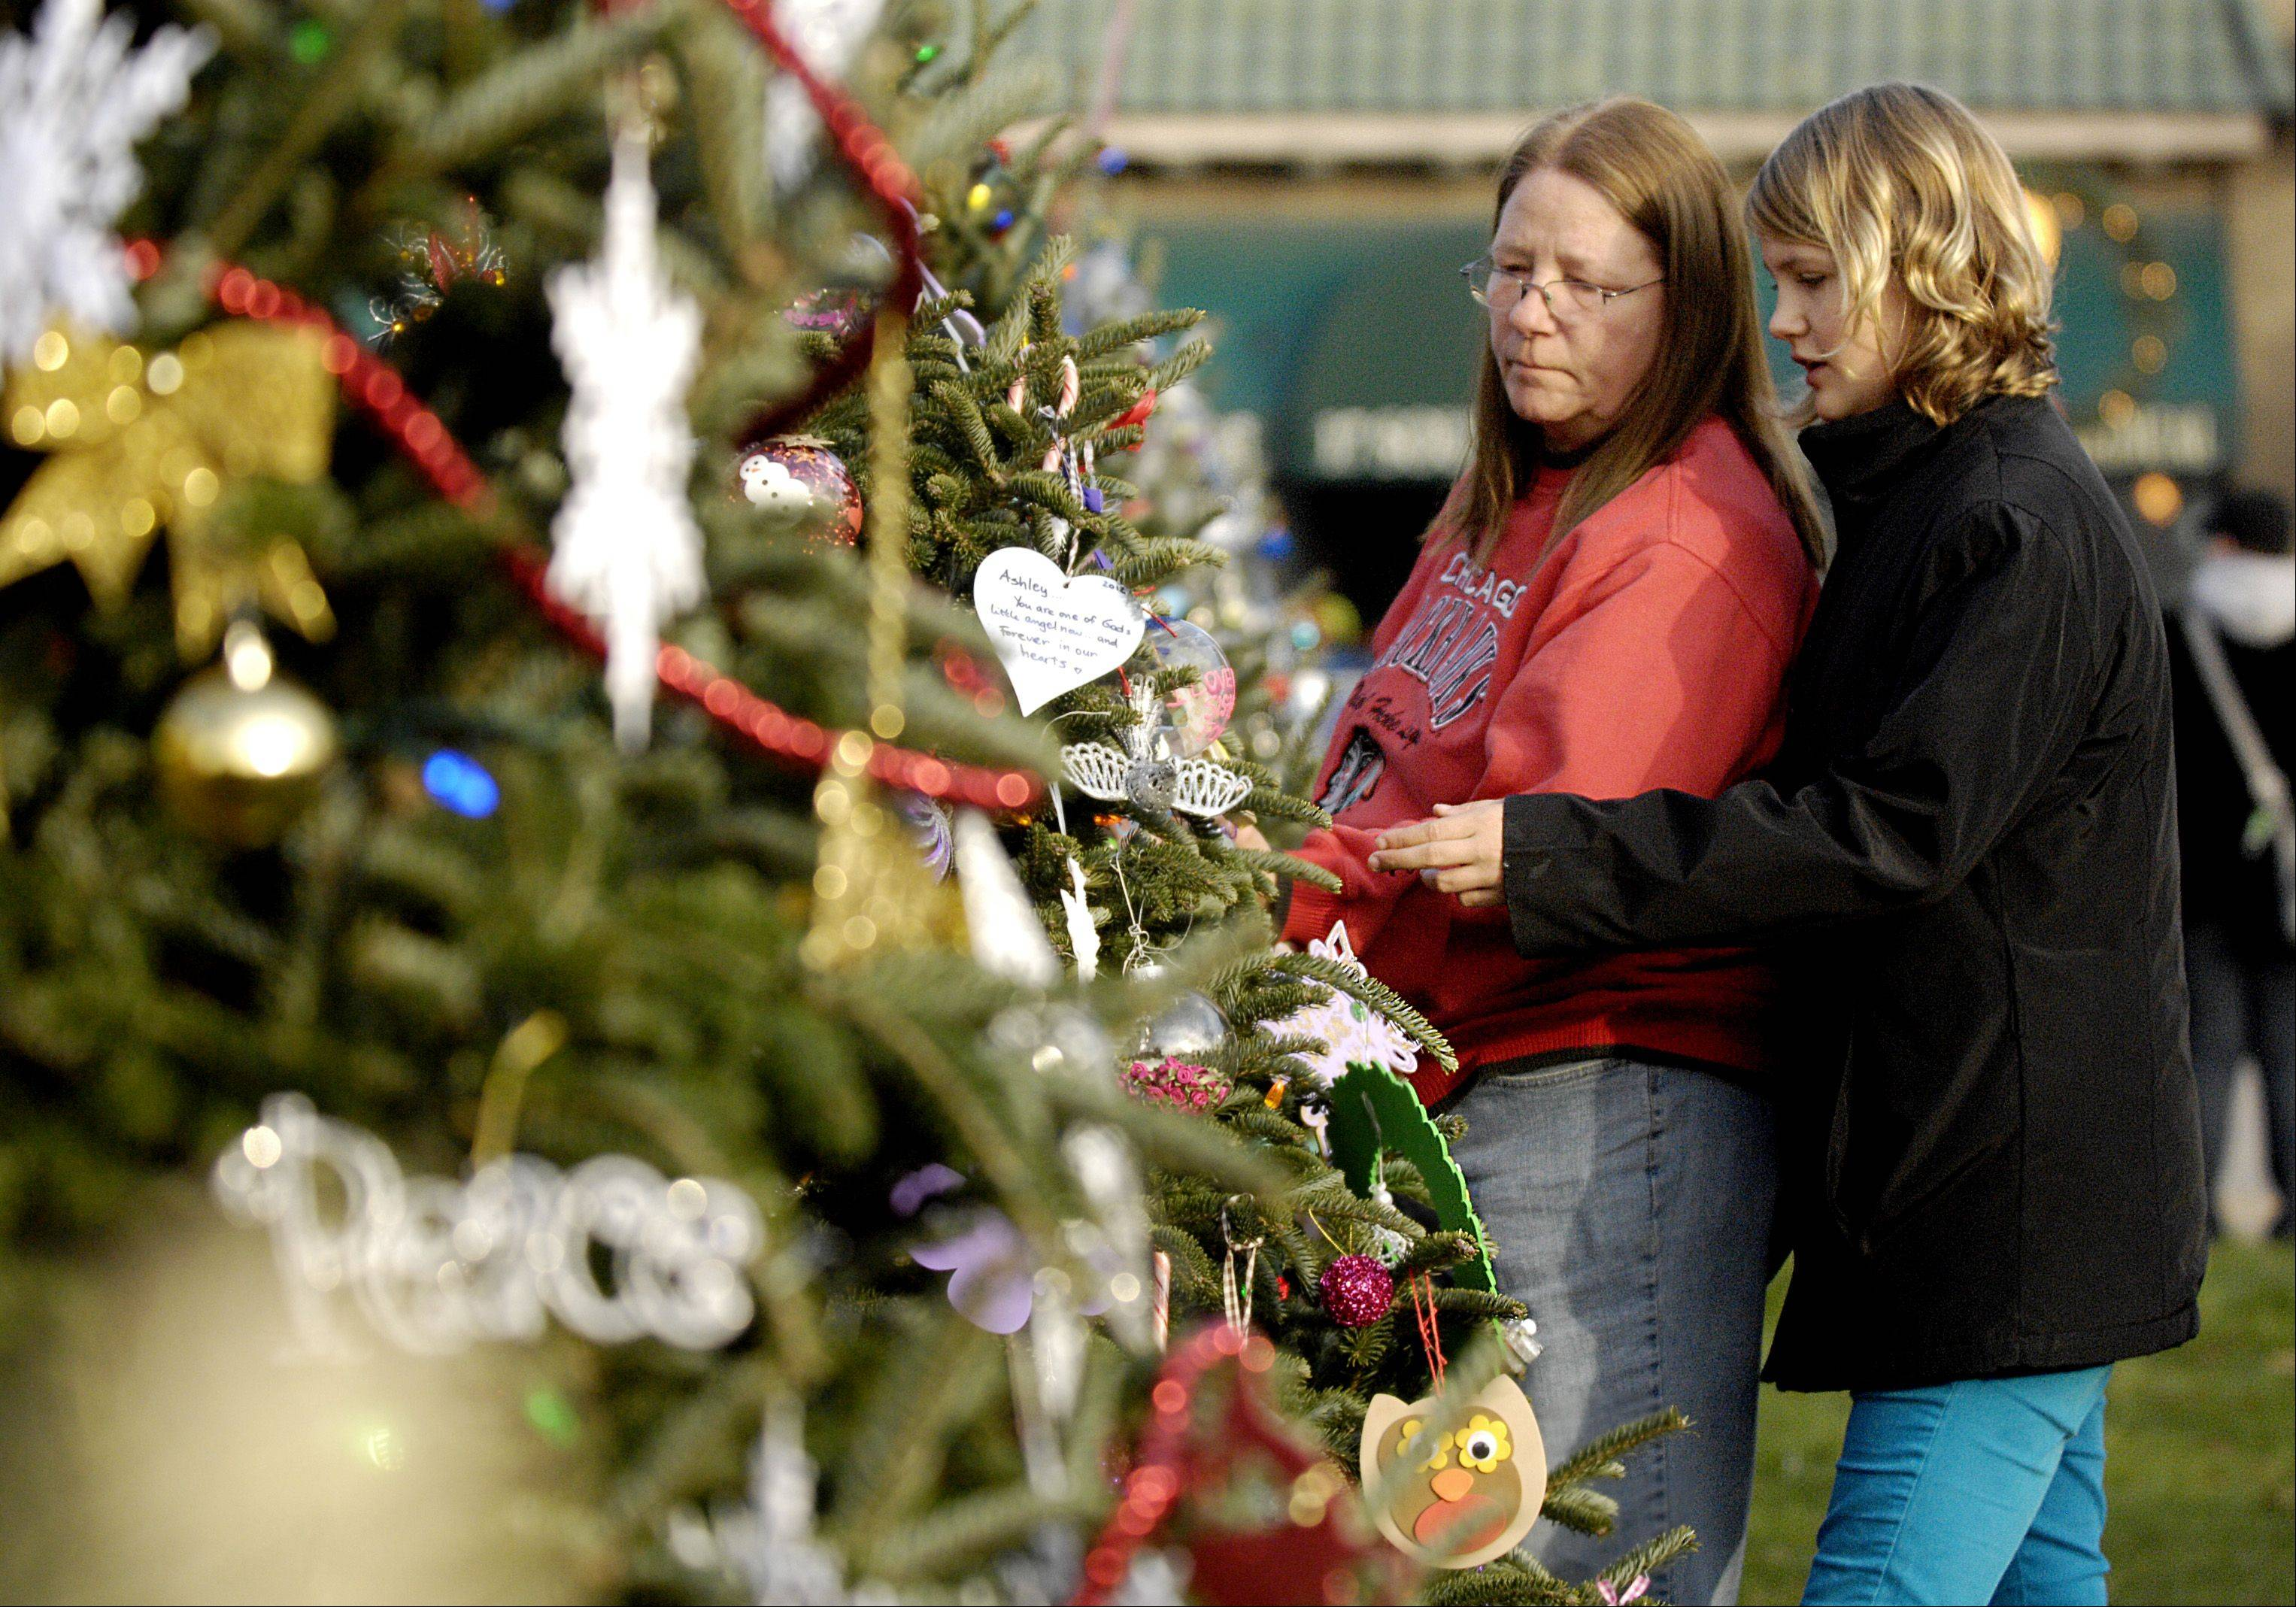 Paula and Emily Fox, 12, of Elmhurst, look over a Christmas tree in memory of Ashley Garza during the Bensenville Holiday Magic events Sunday in the Town Center. Paula grew up in Bensenville and still comes to the holiday event every year.